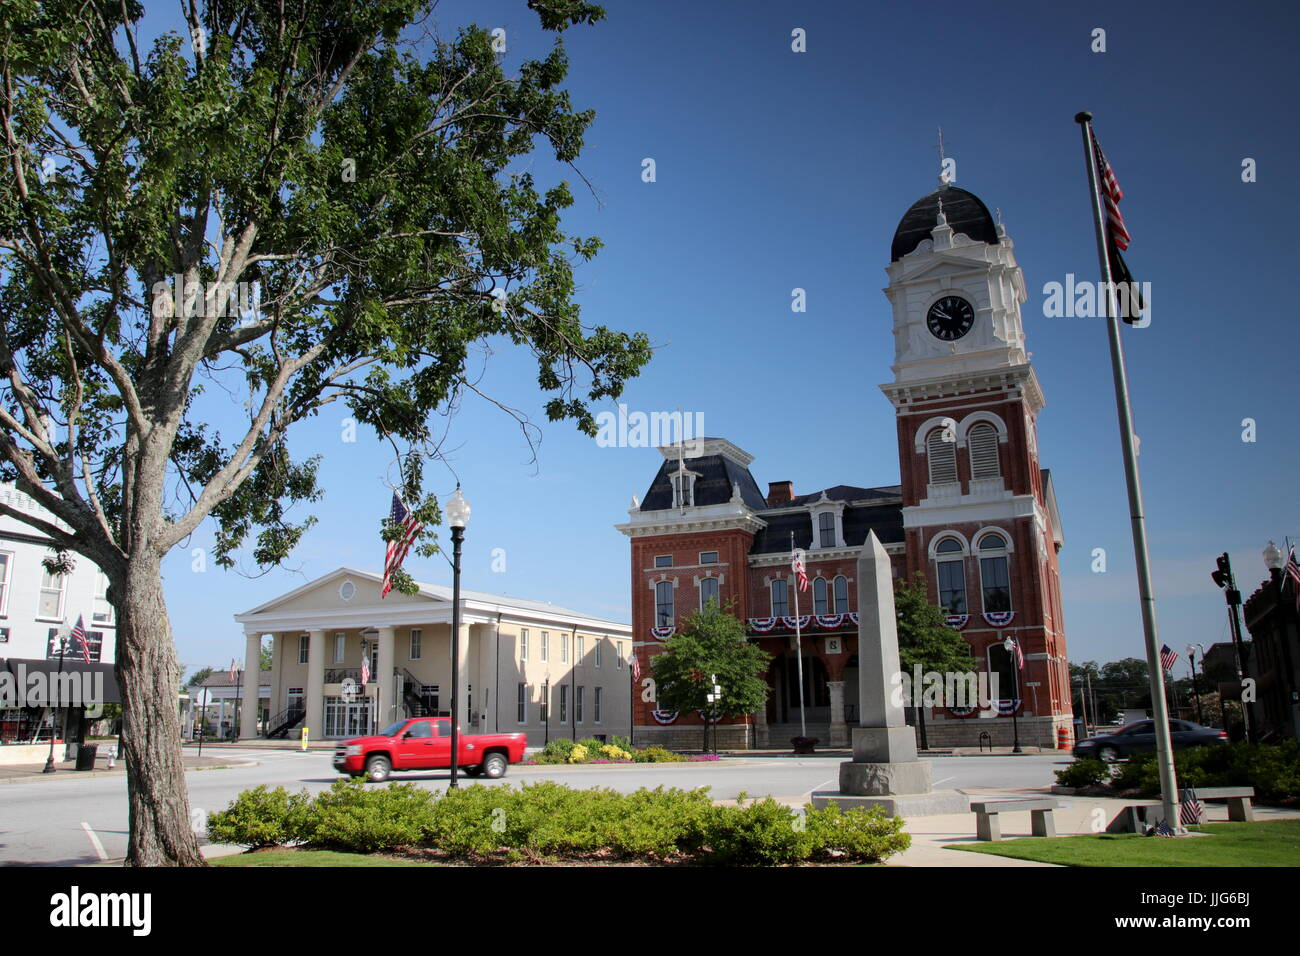 Covington Georgia - Stock Image